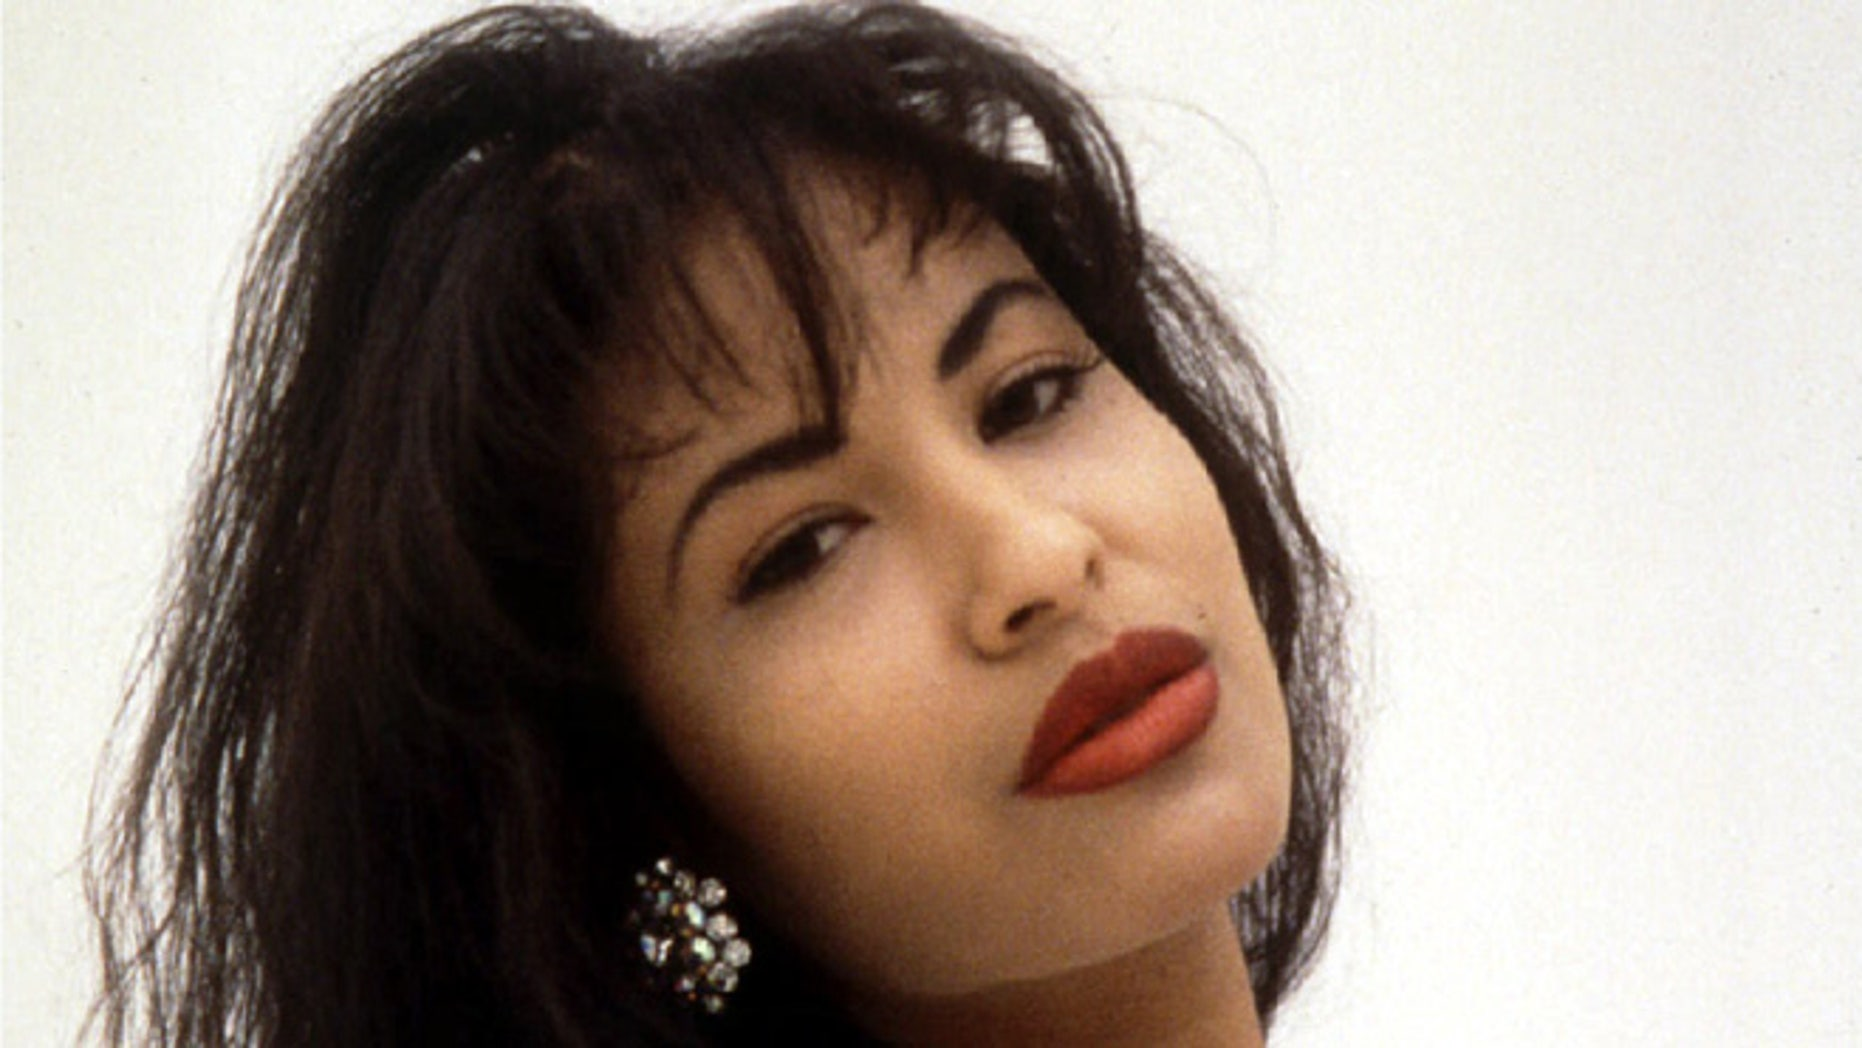 A Texas judge allowed a lawsuit against Tejano music superstar Selena's widower to continue.